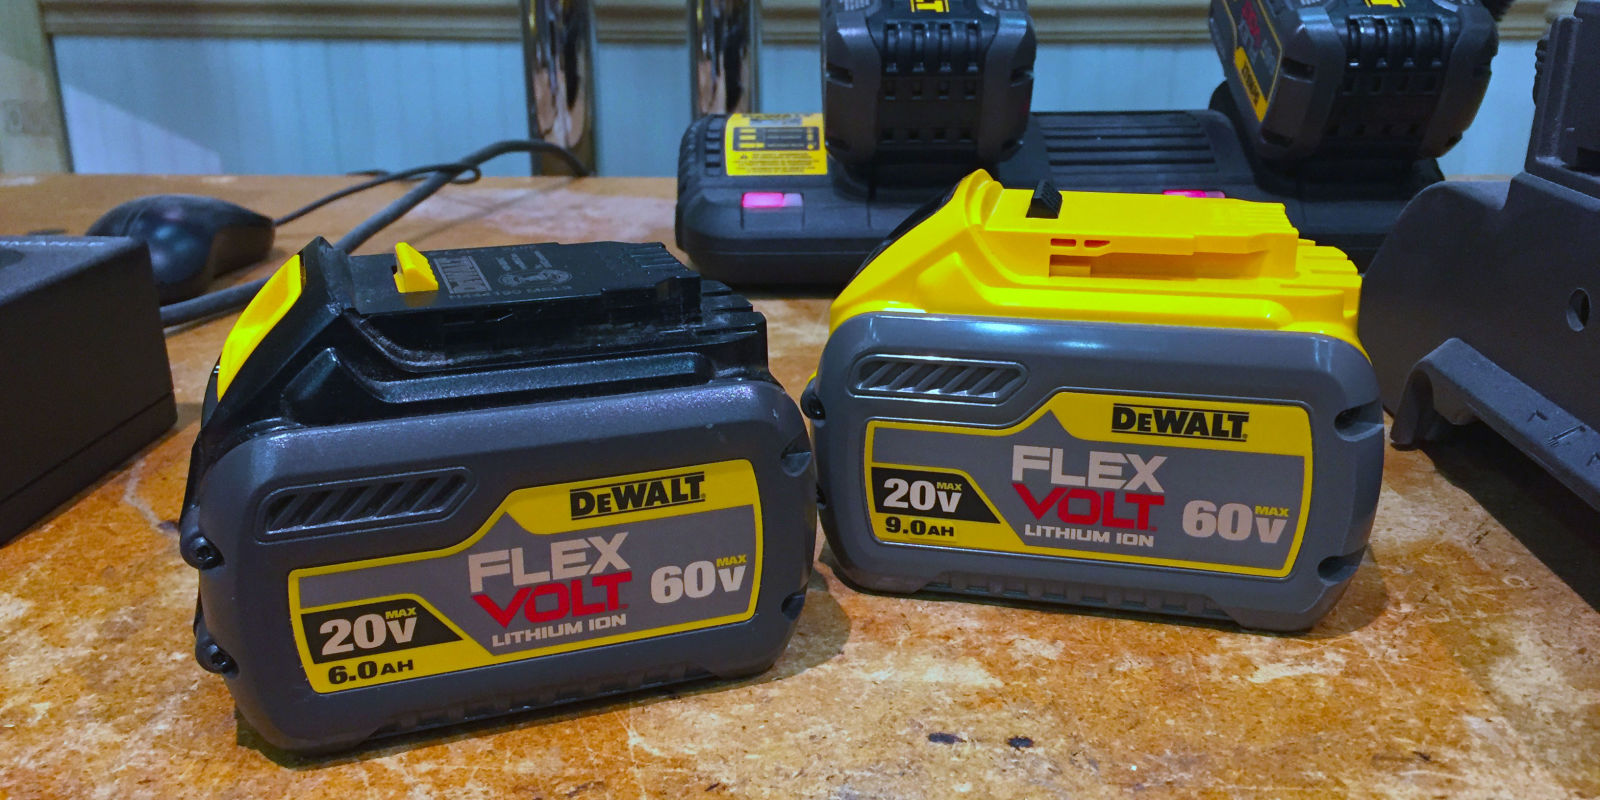 How To Choose A High Voltage Cordless Tool System Dewalt